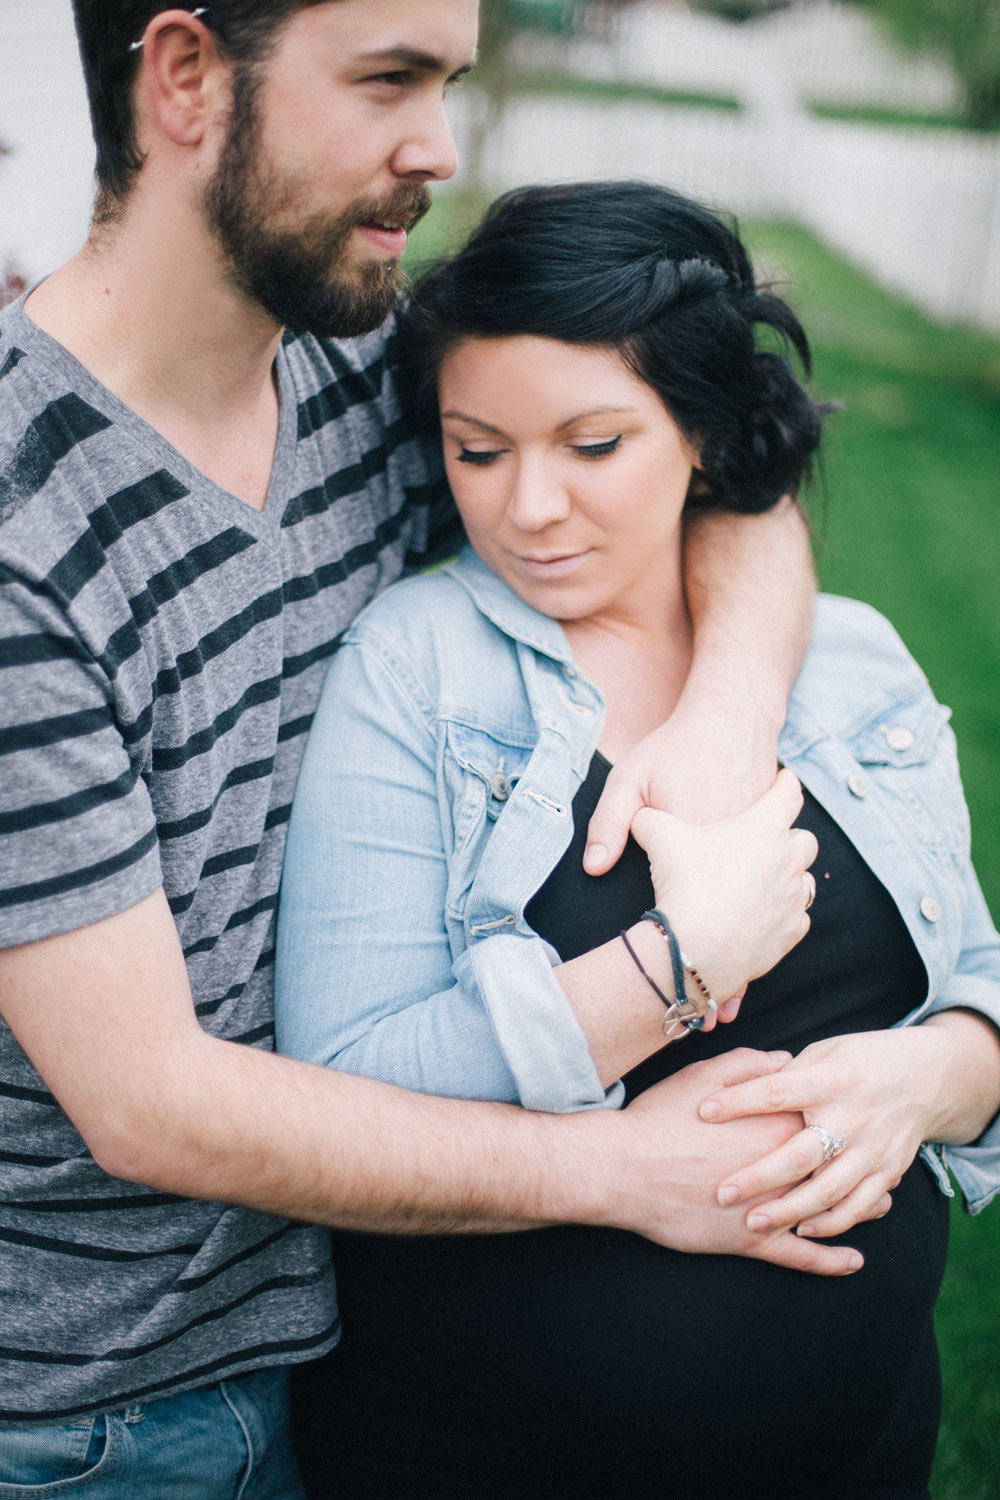 leann + anthony maternity